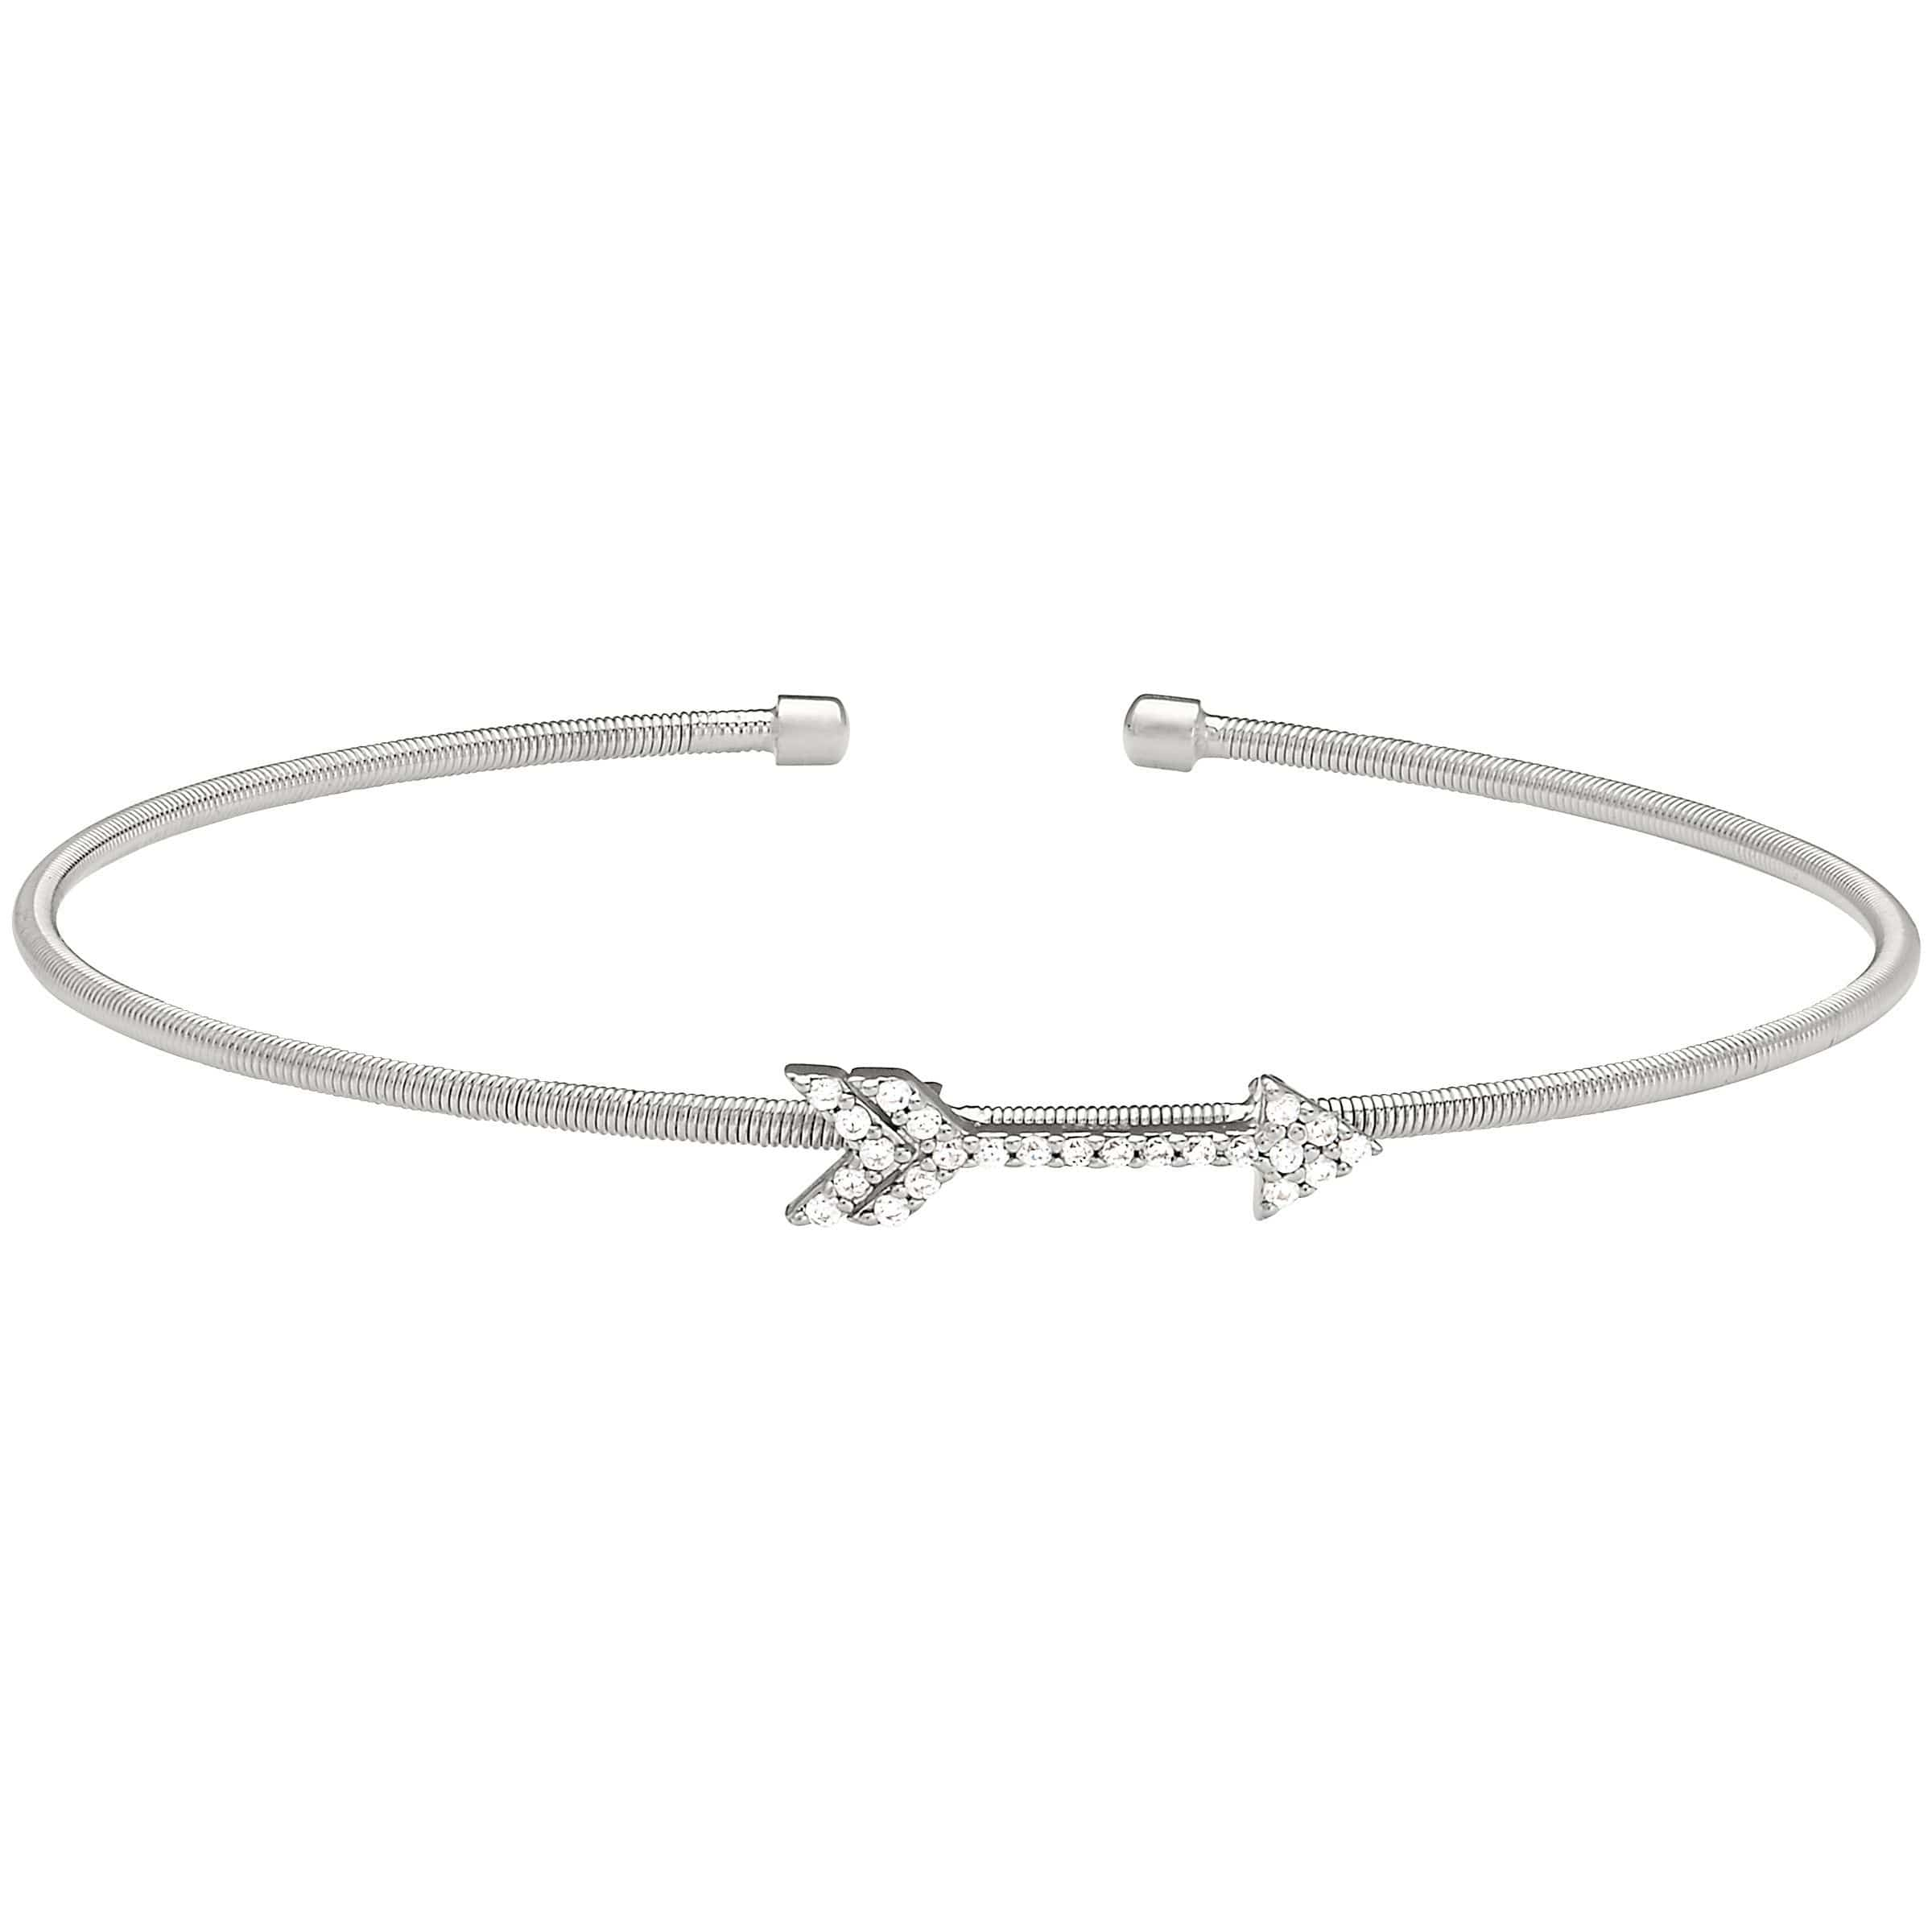 Rhodium Finish Sterling Silver Cable Cuff Arrow Bracelet - LL7057B-RH-Kelly Waters-Renee Taylor Gallery